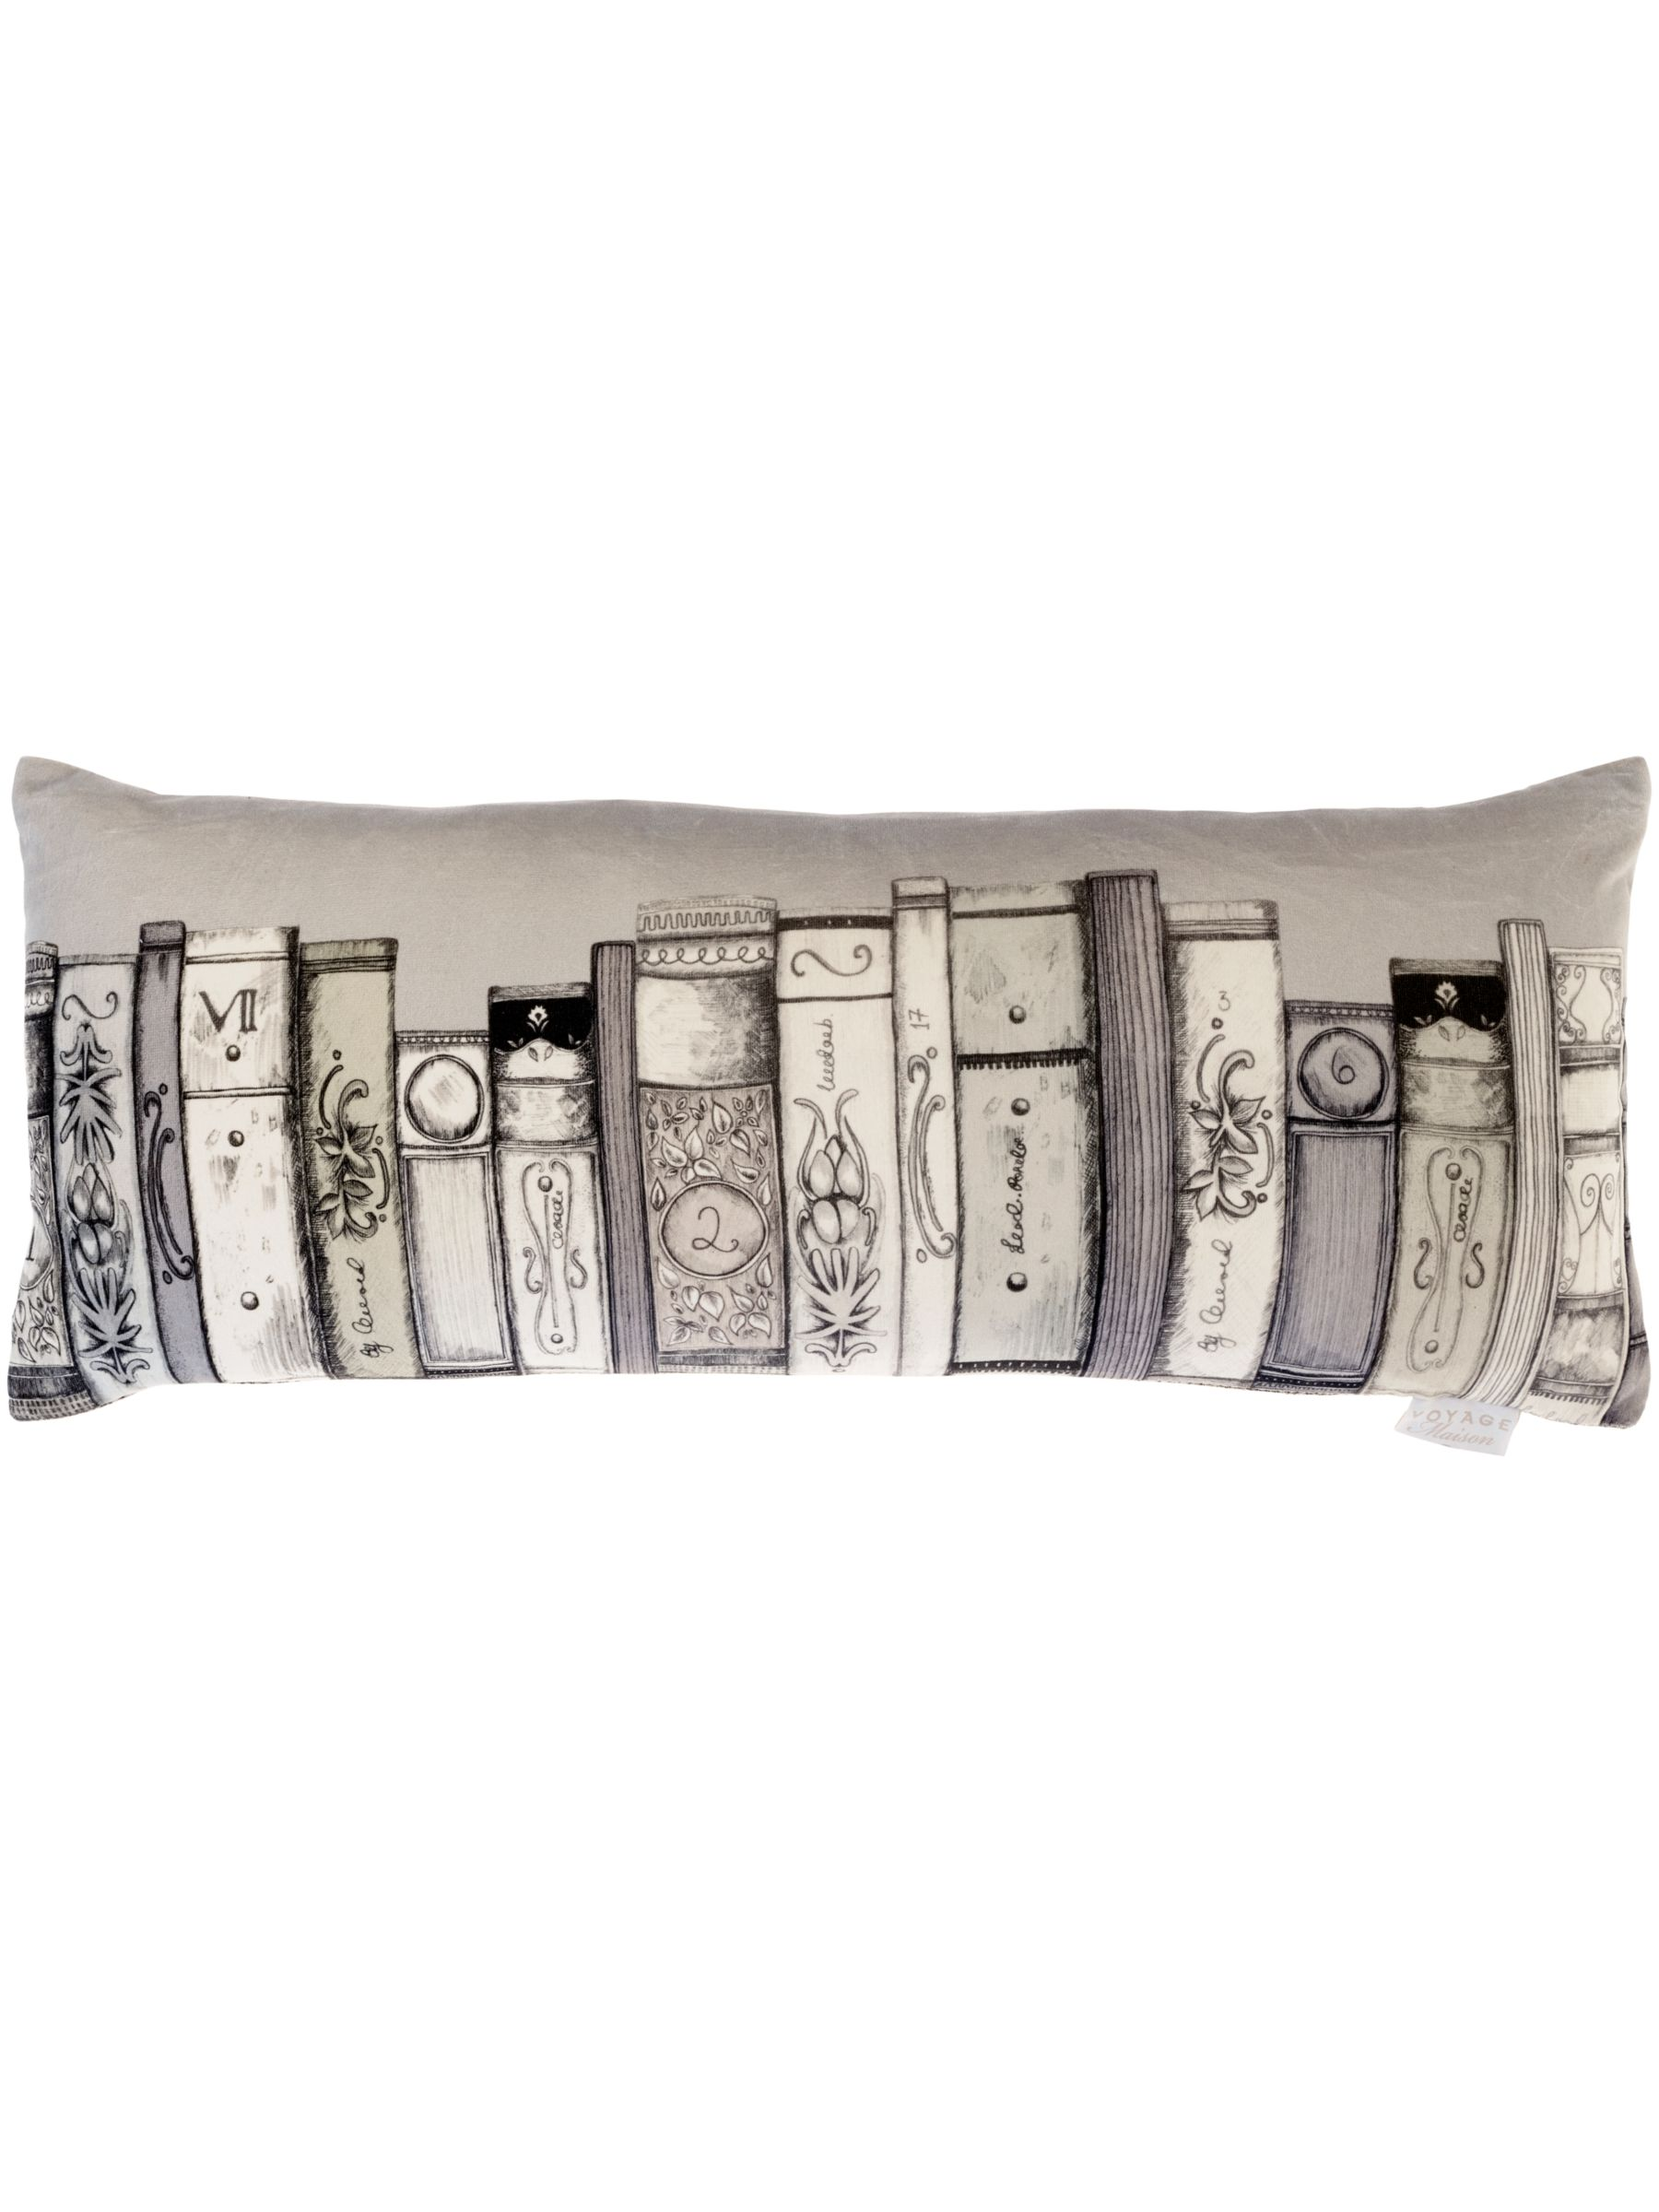 Voyage Voyage Library Books Cushion